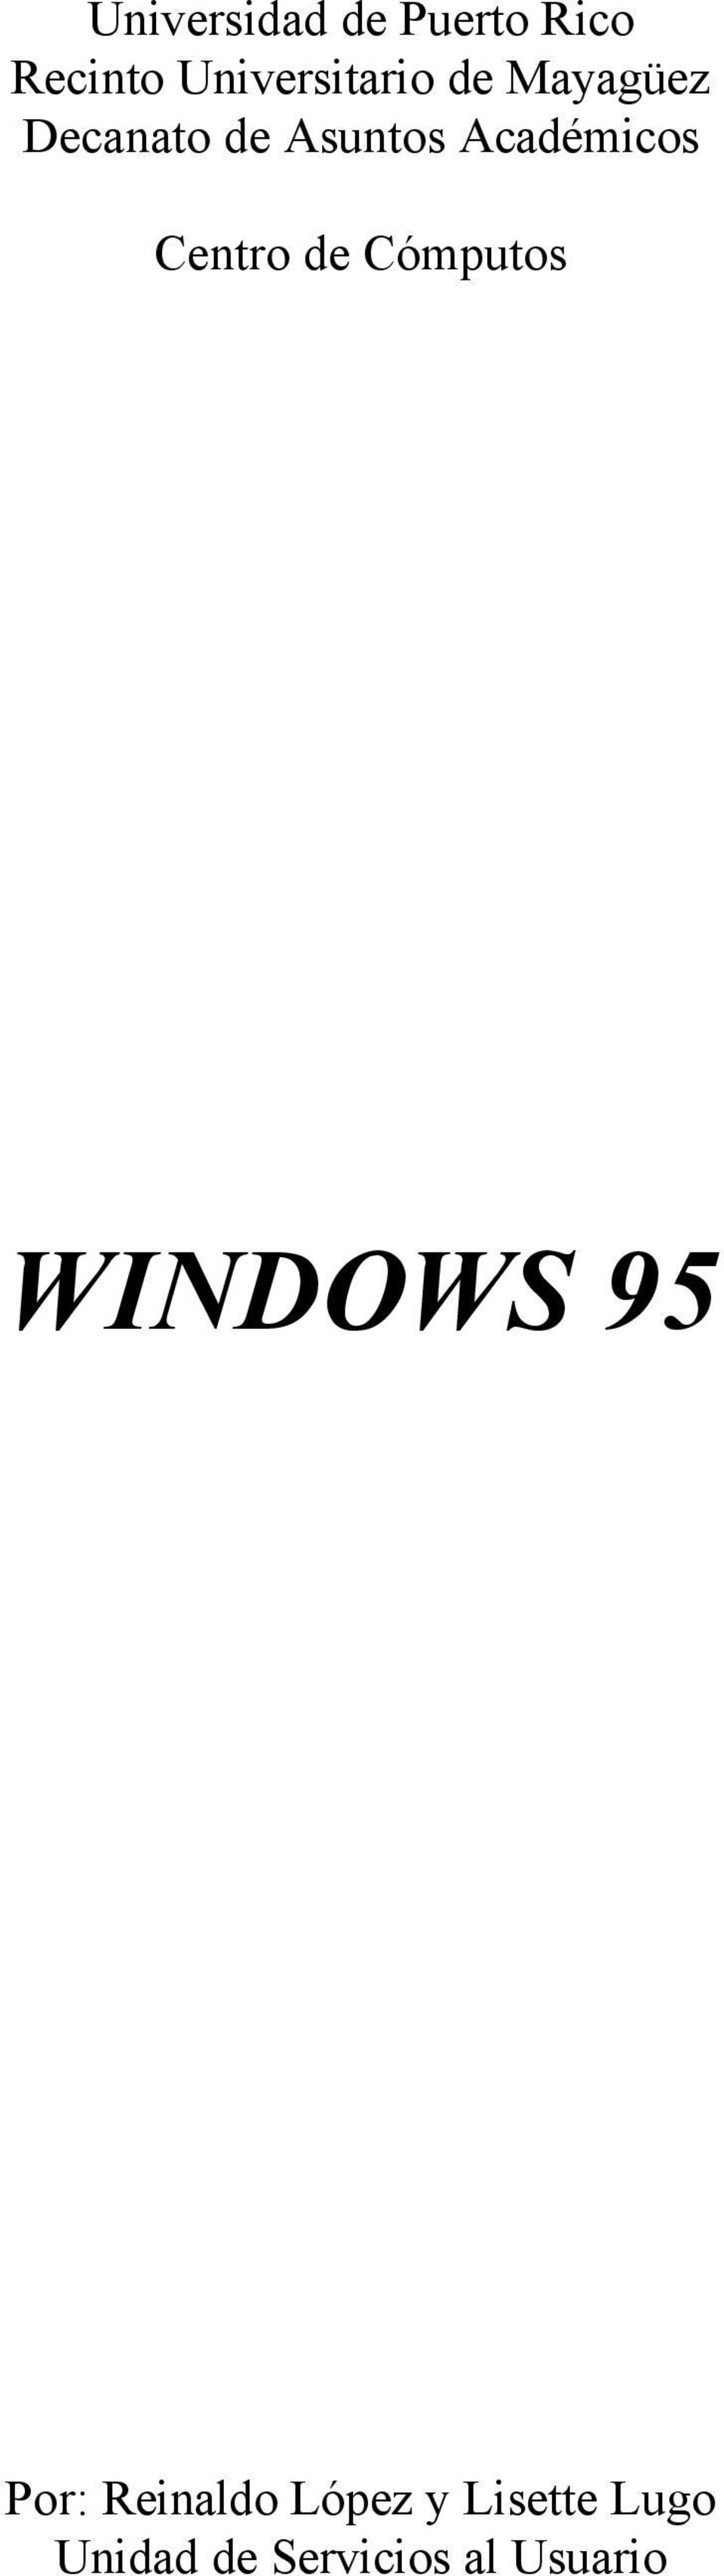 Académicos Centro de Cómputos WINDOWS 95 Por: